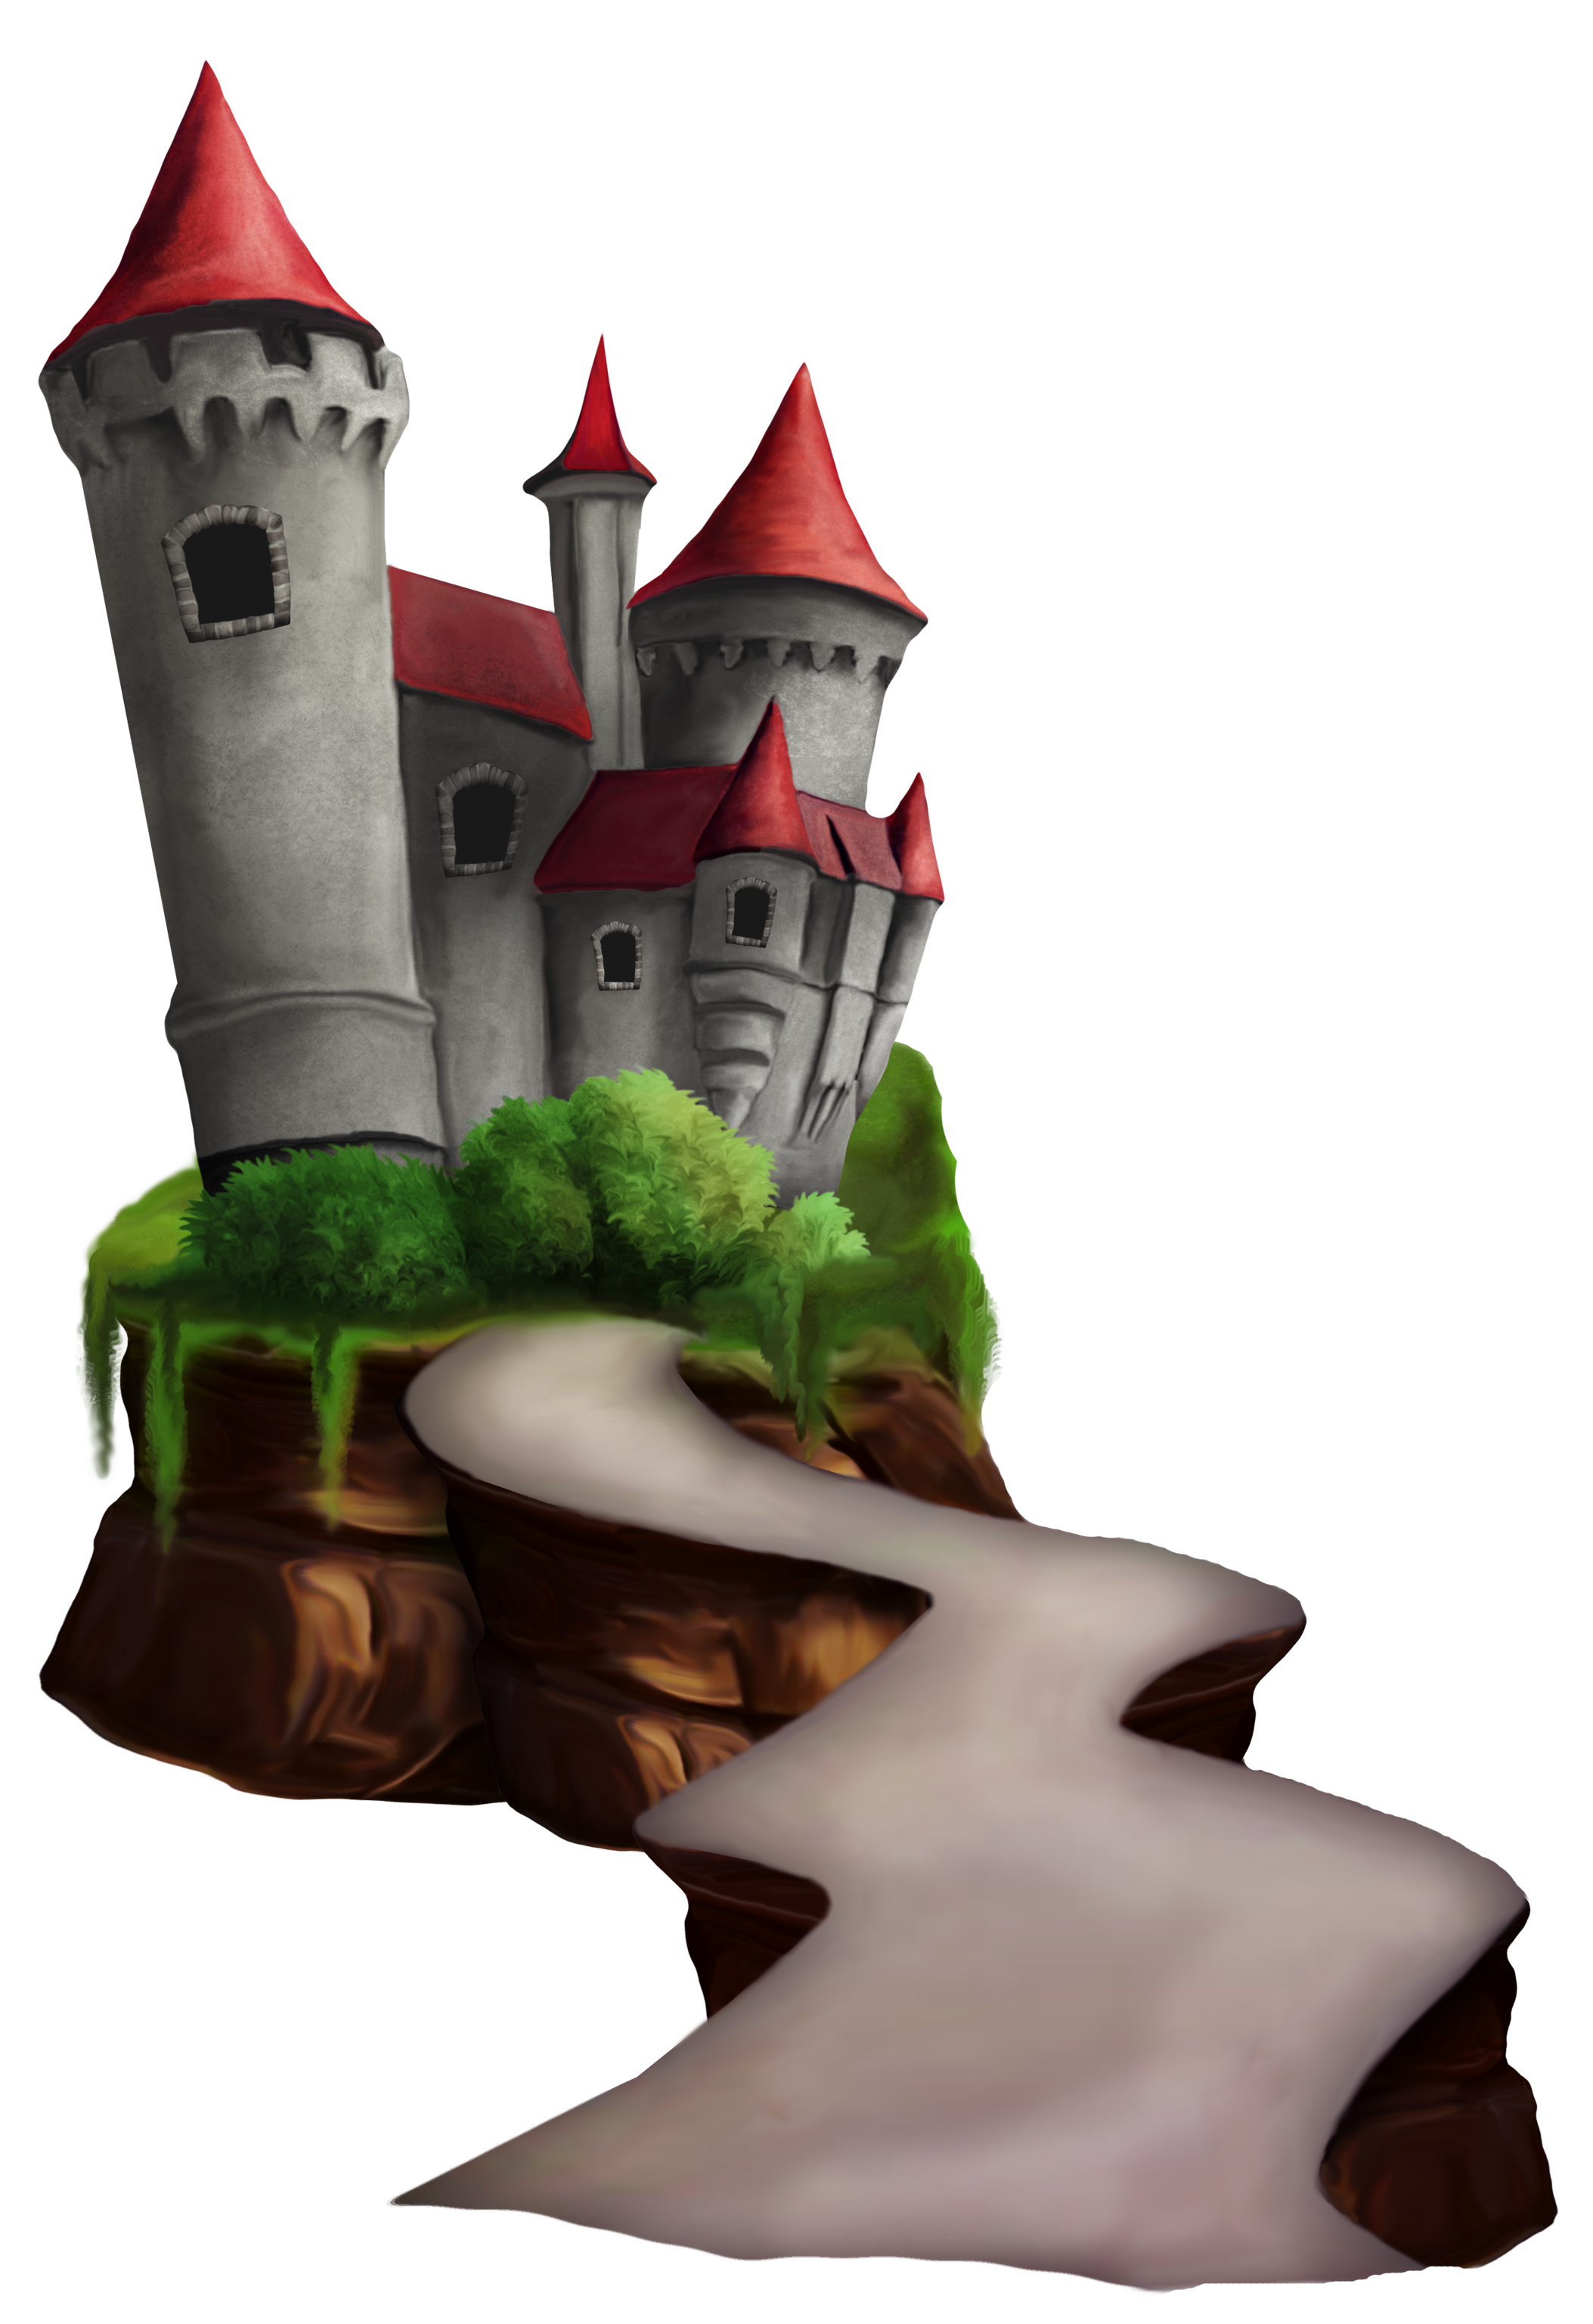 Way clipart view View Yopriceville PNG Castle Gallery